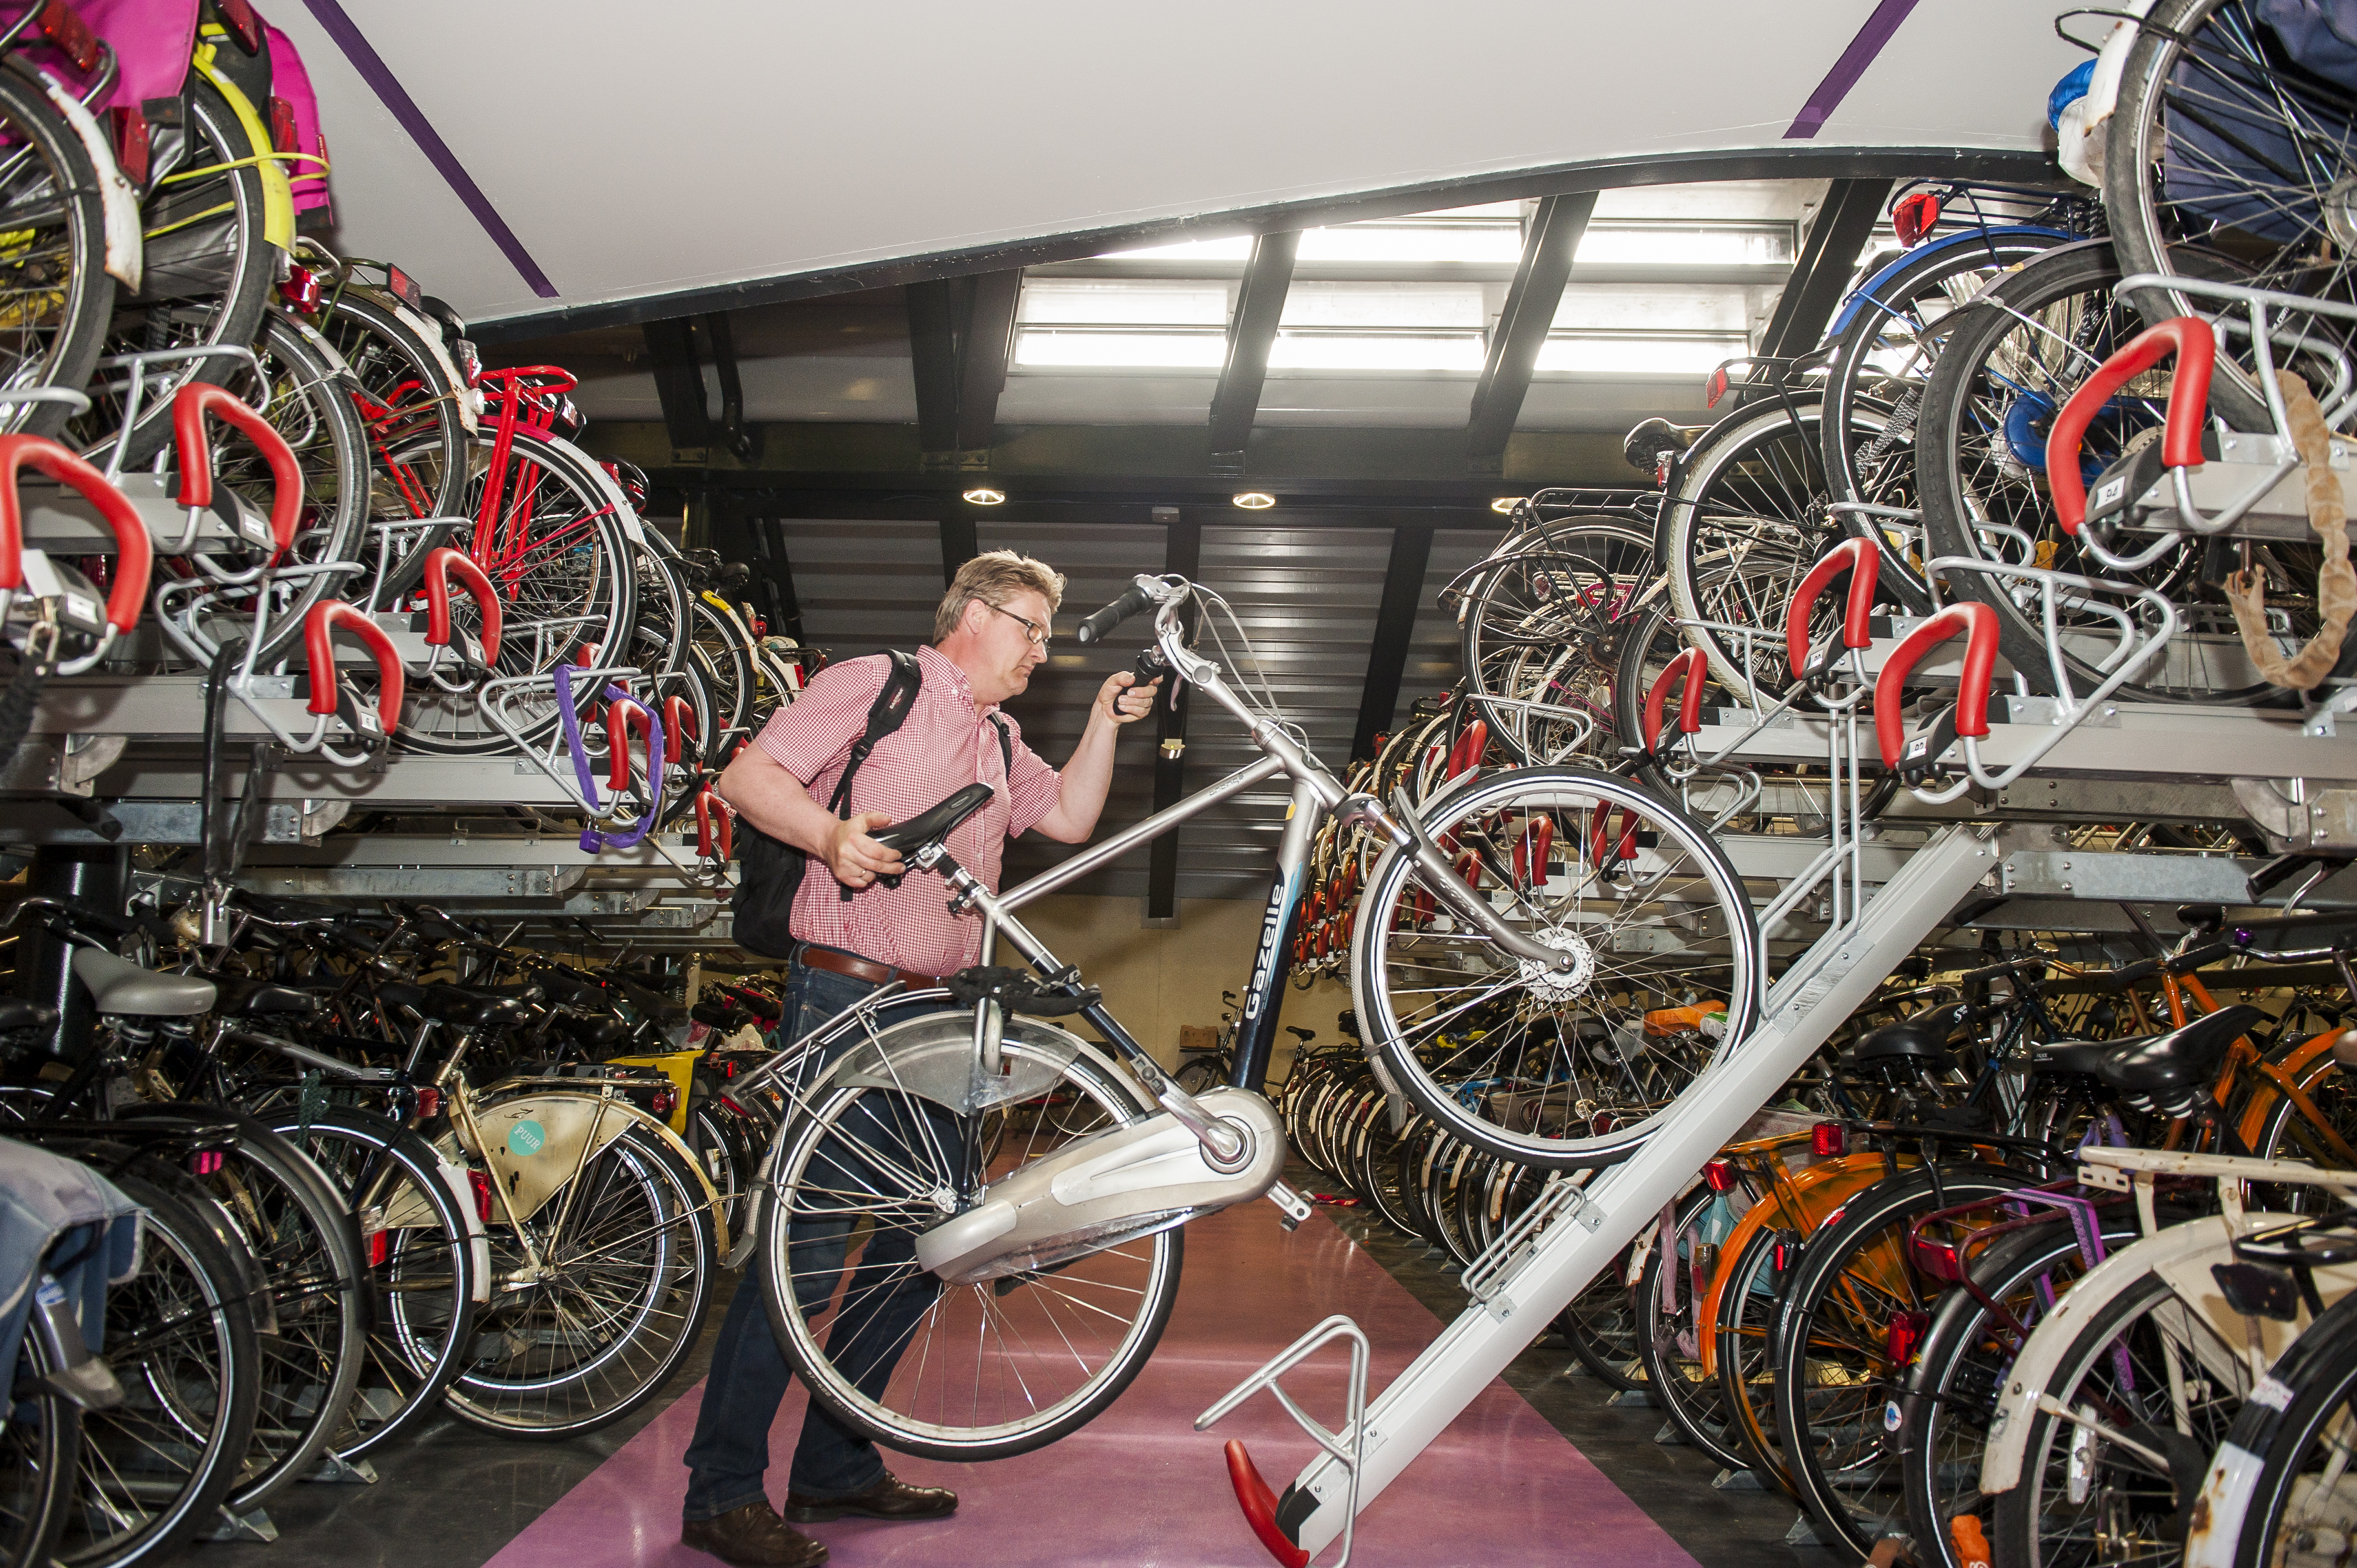 Bicycle parking at Utrecht Station